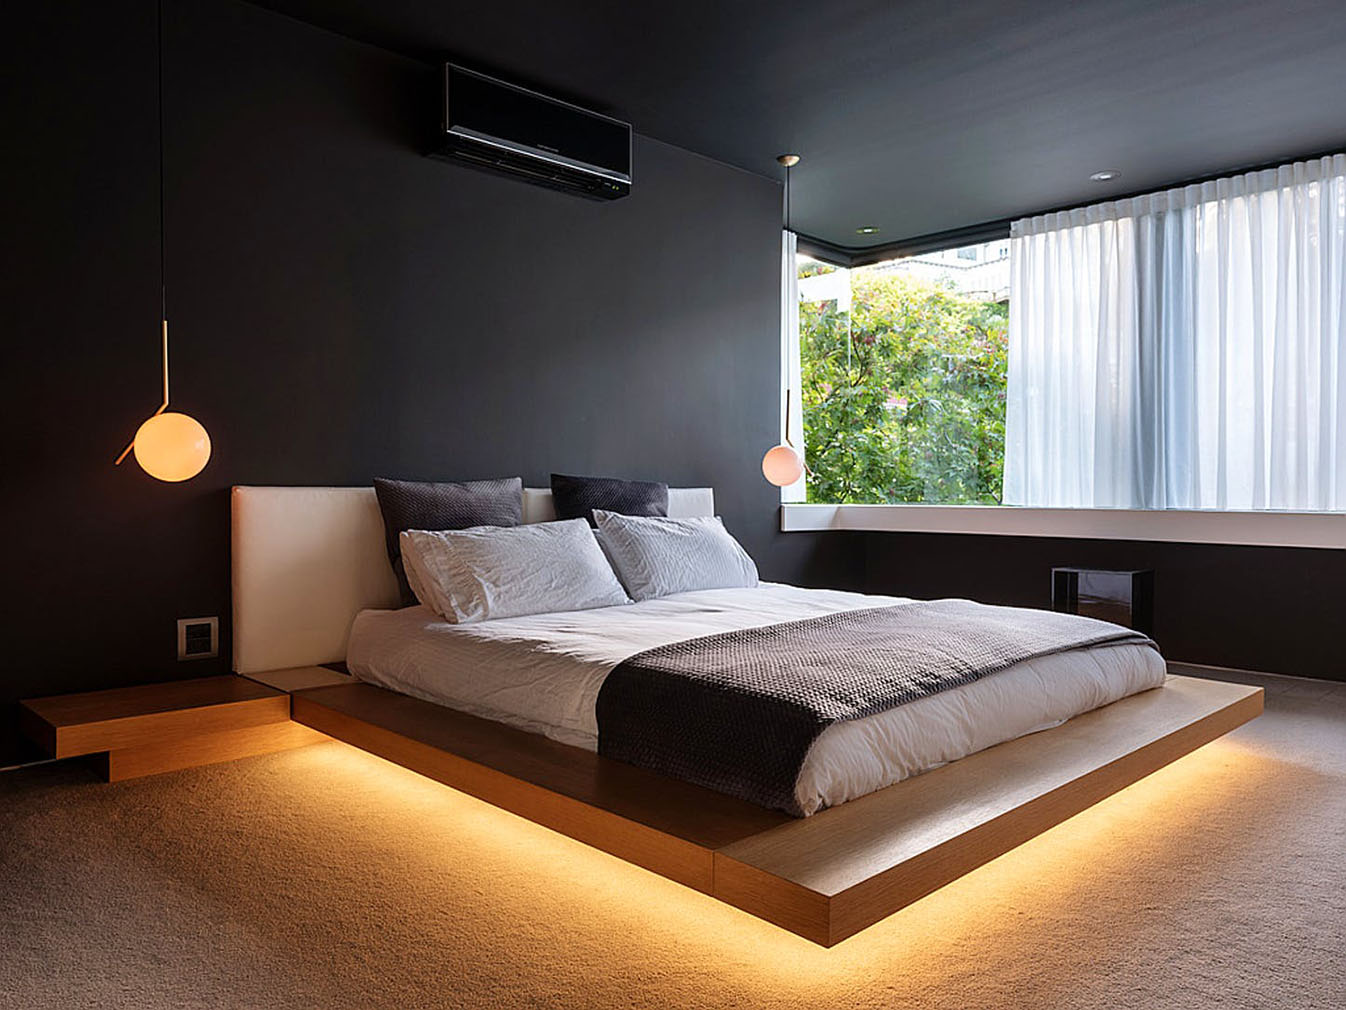 The floating master bed